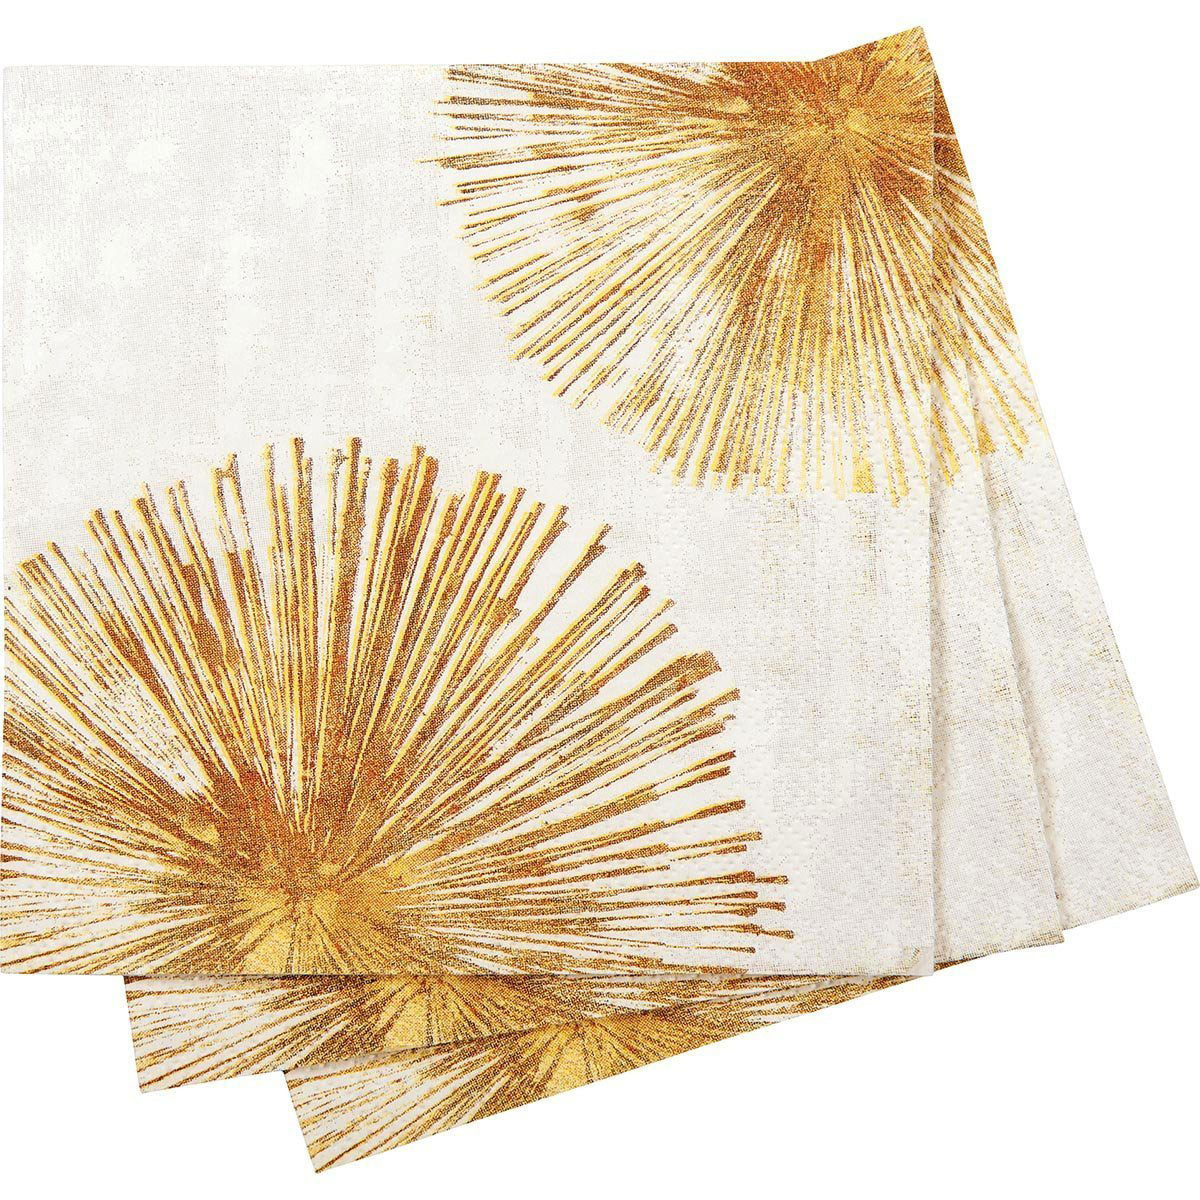 Holiday Entertaining with Gold Sunburst cocktail napkins